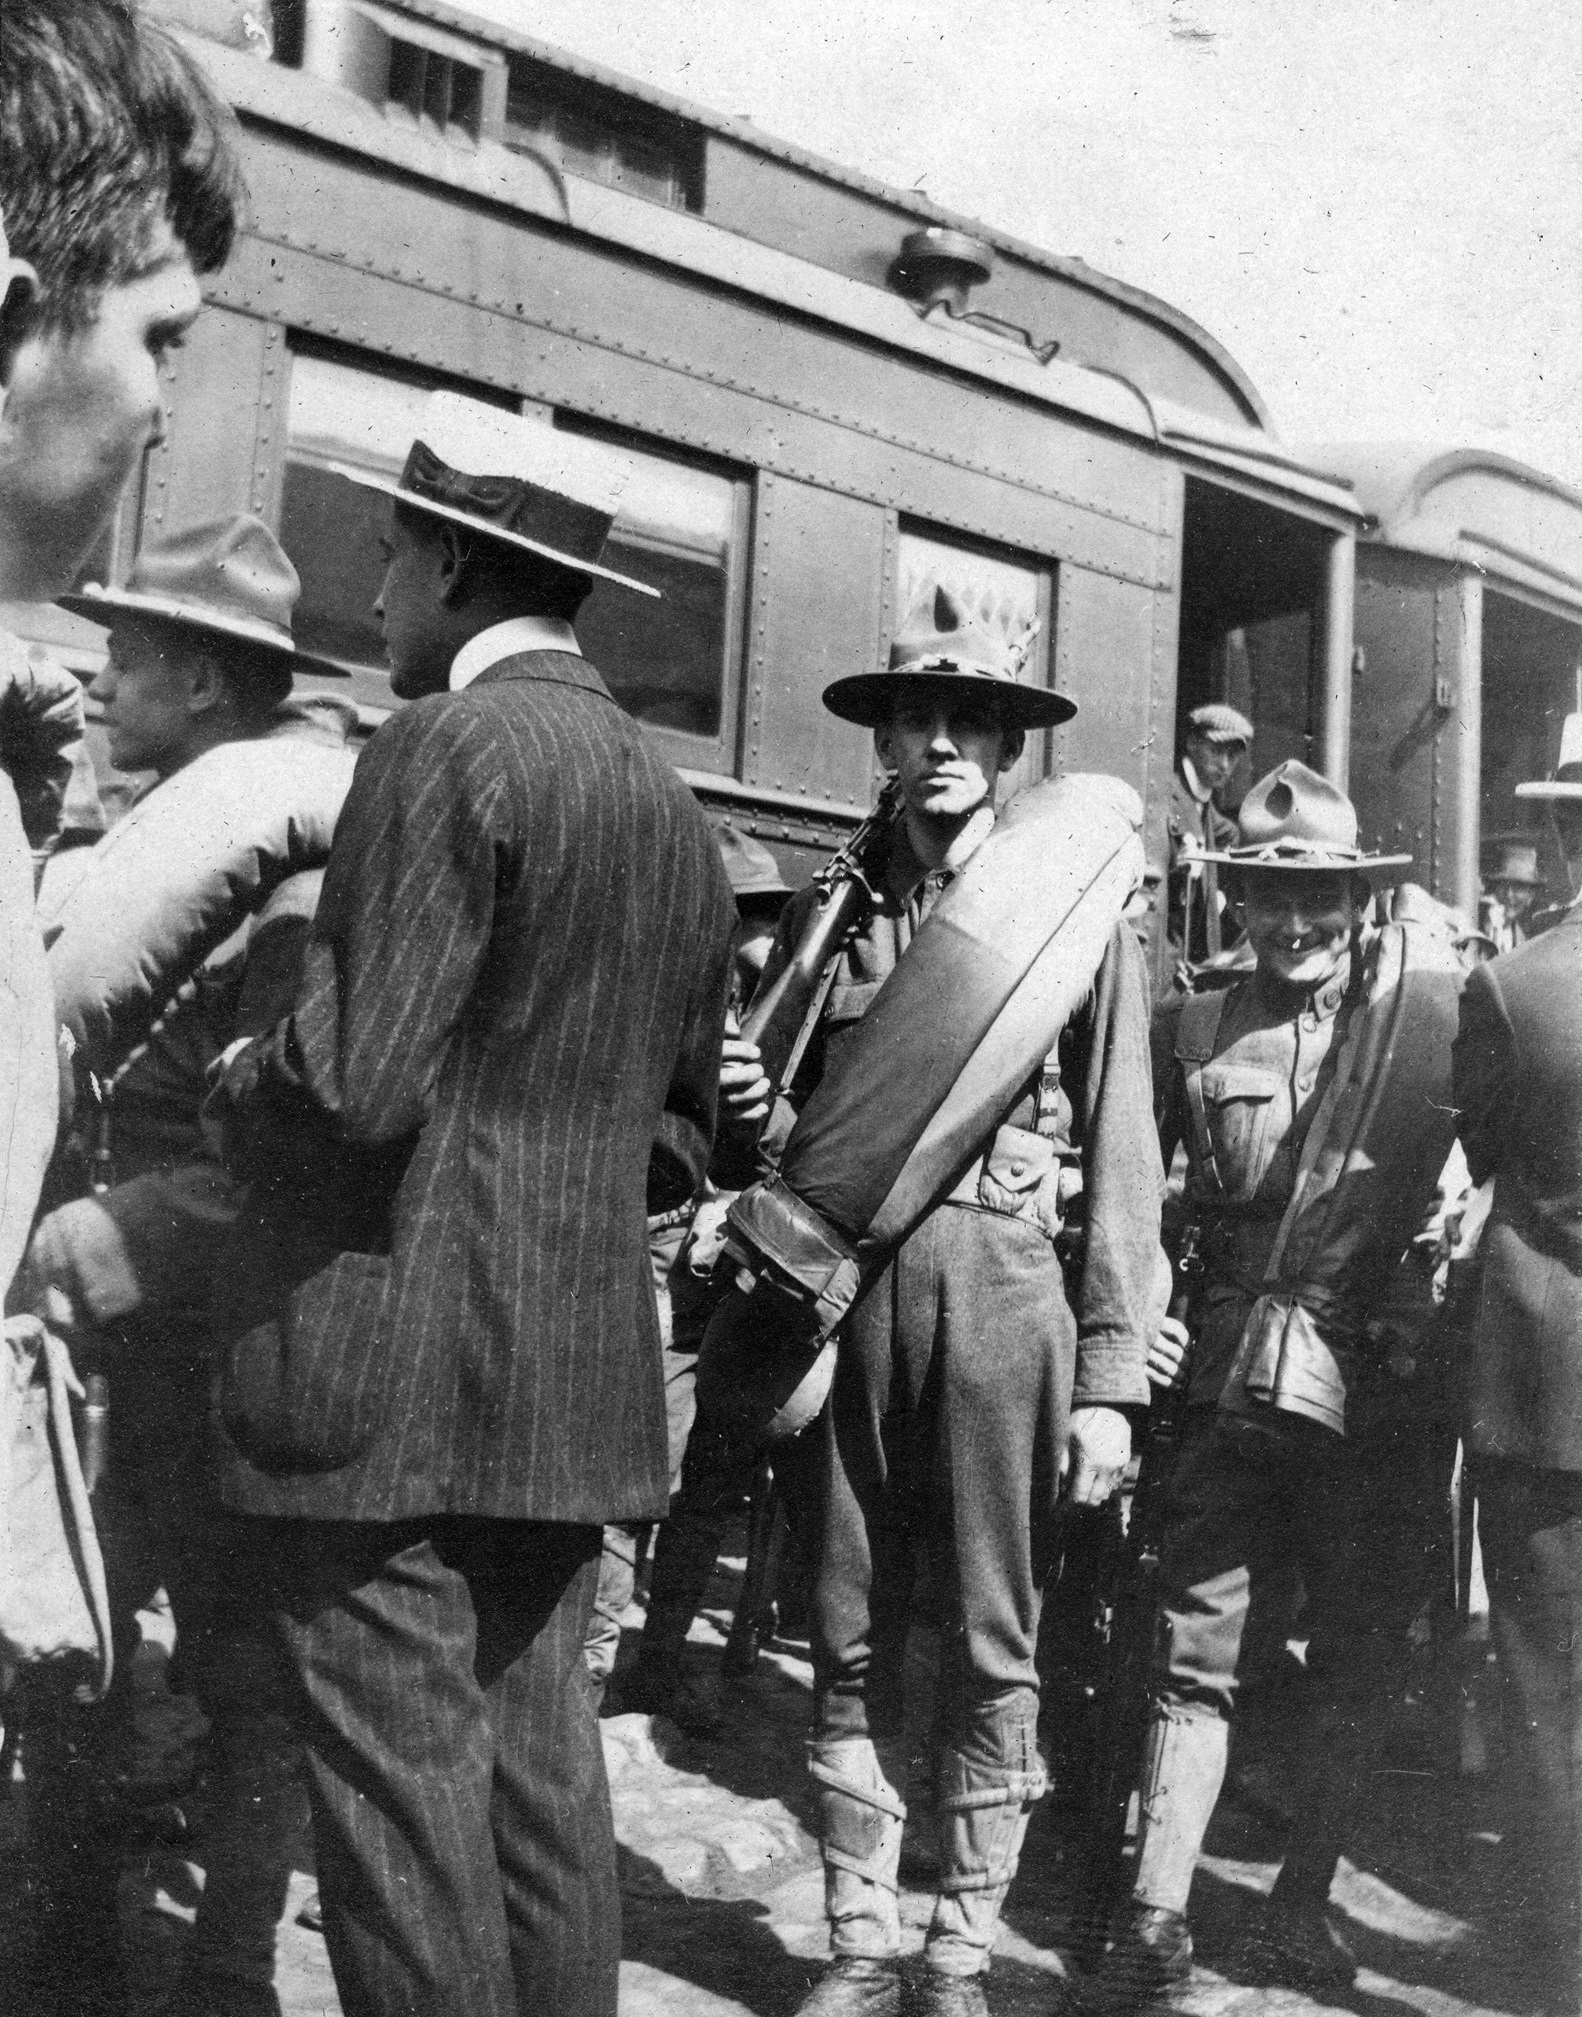 Soldier, Elmer League, heading off to Service in World War I. Either at Bladen Street Station or West Street Station. Annapolis, Maryland Date: 1917. Source: Unknown.